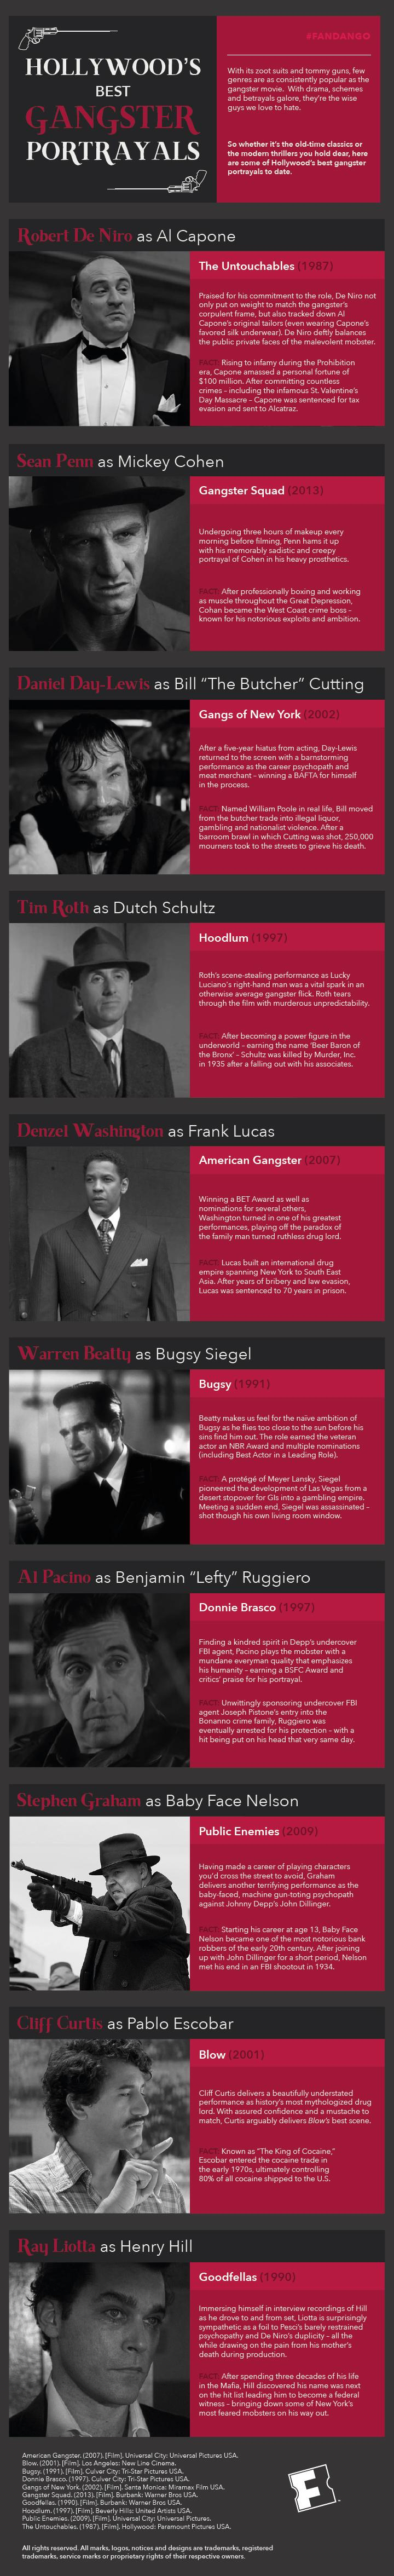 Hollywood's Best Gangster Portrayals